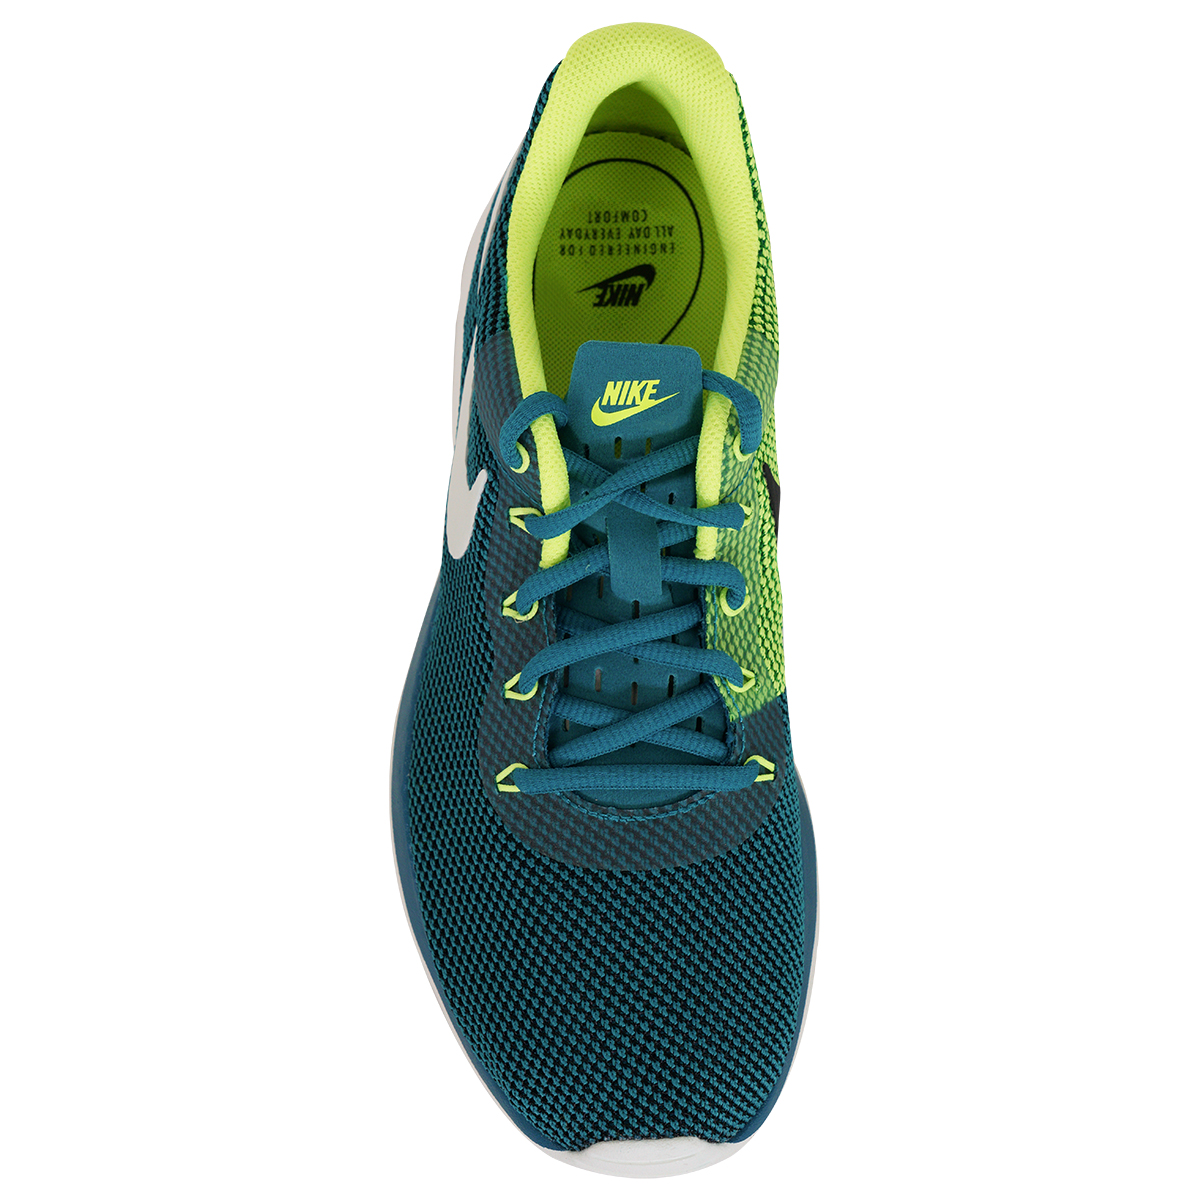 Nike-Men-039-s-Tanjun-Racer-Running-Shoes thumbnail 10